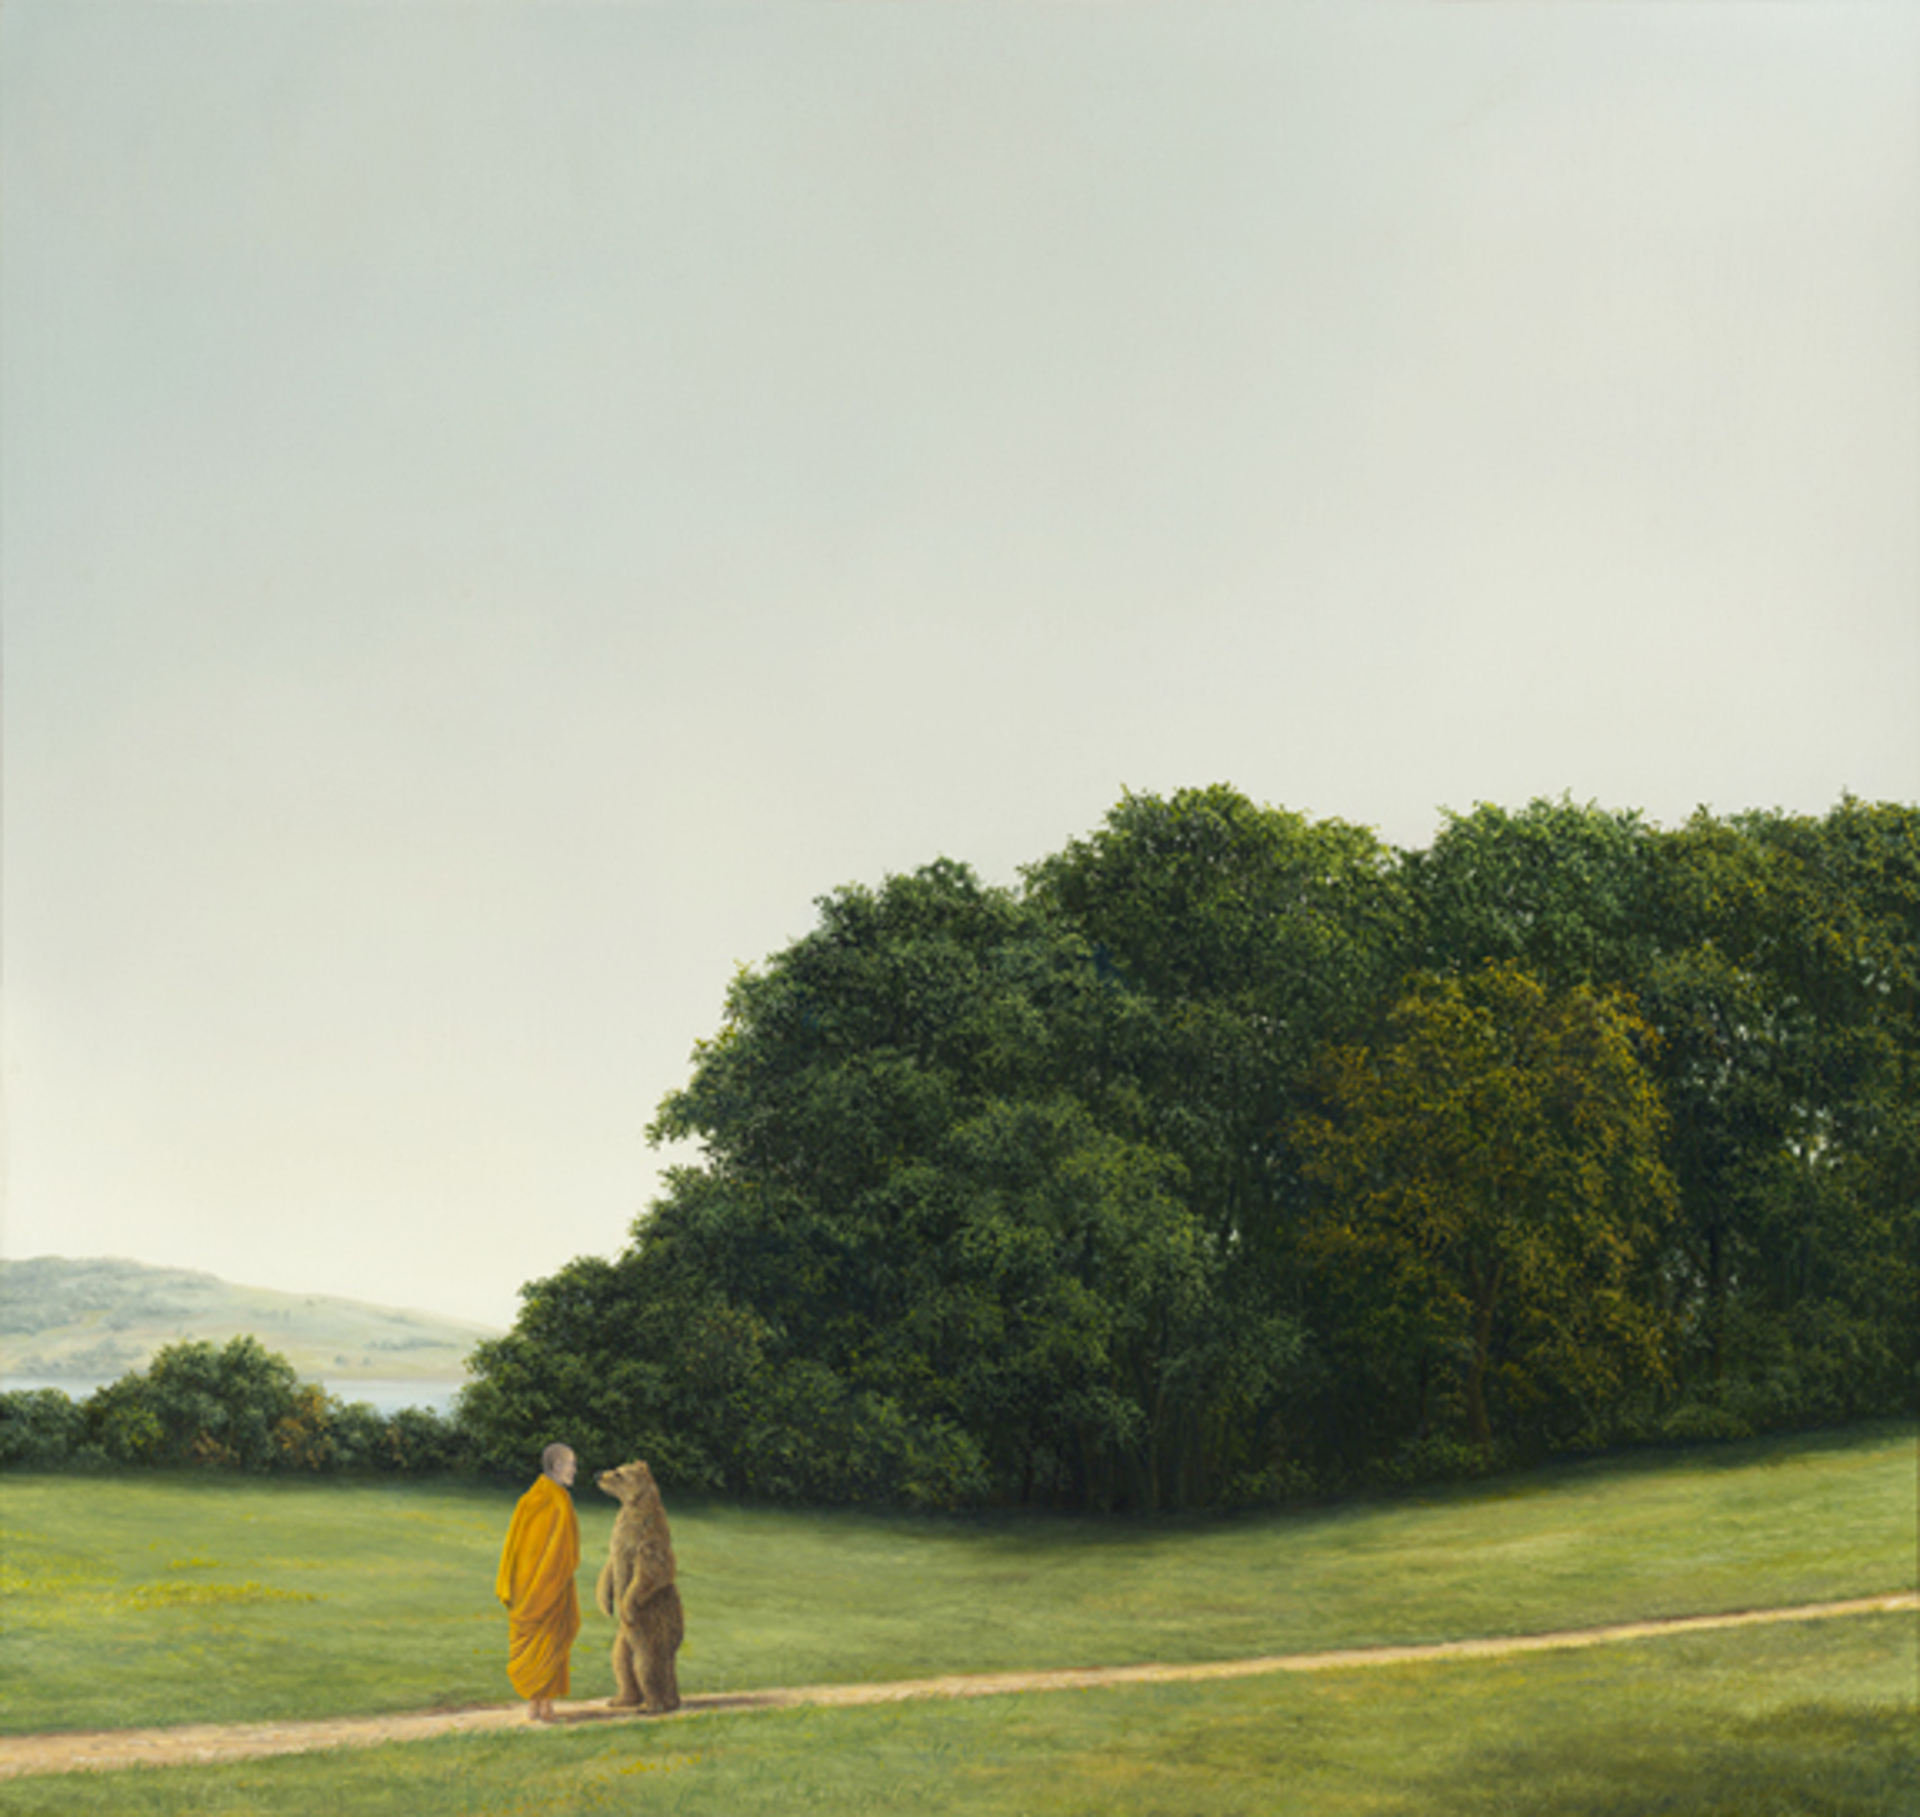 The Conflation by Robert Bissell